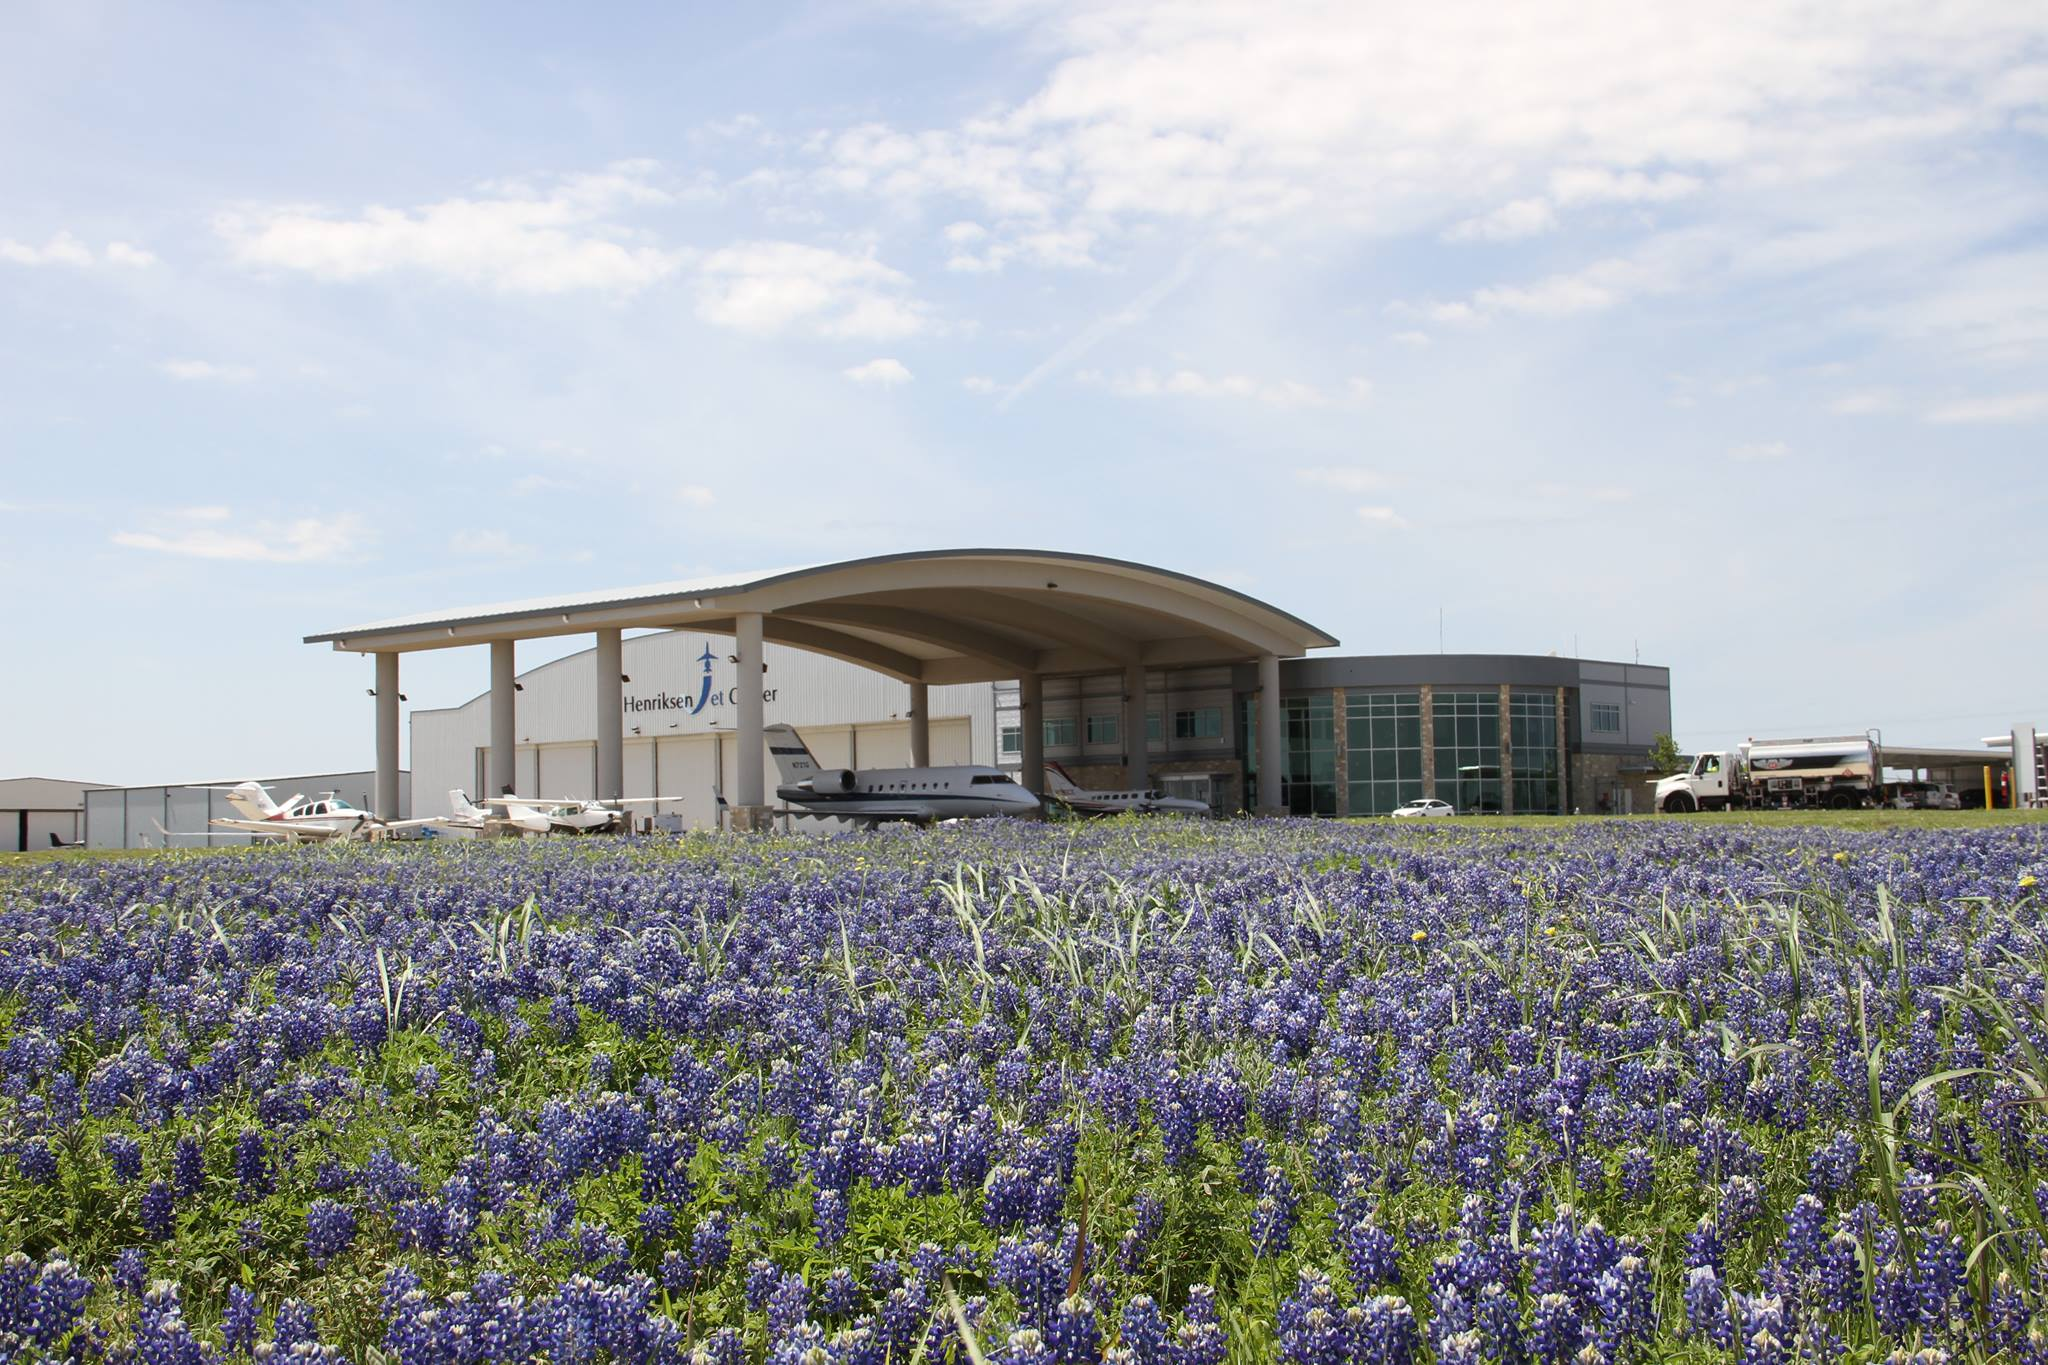 Henriksen Jet Center, Austin Executive/KEDC eyeing up extra traffic